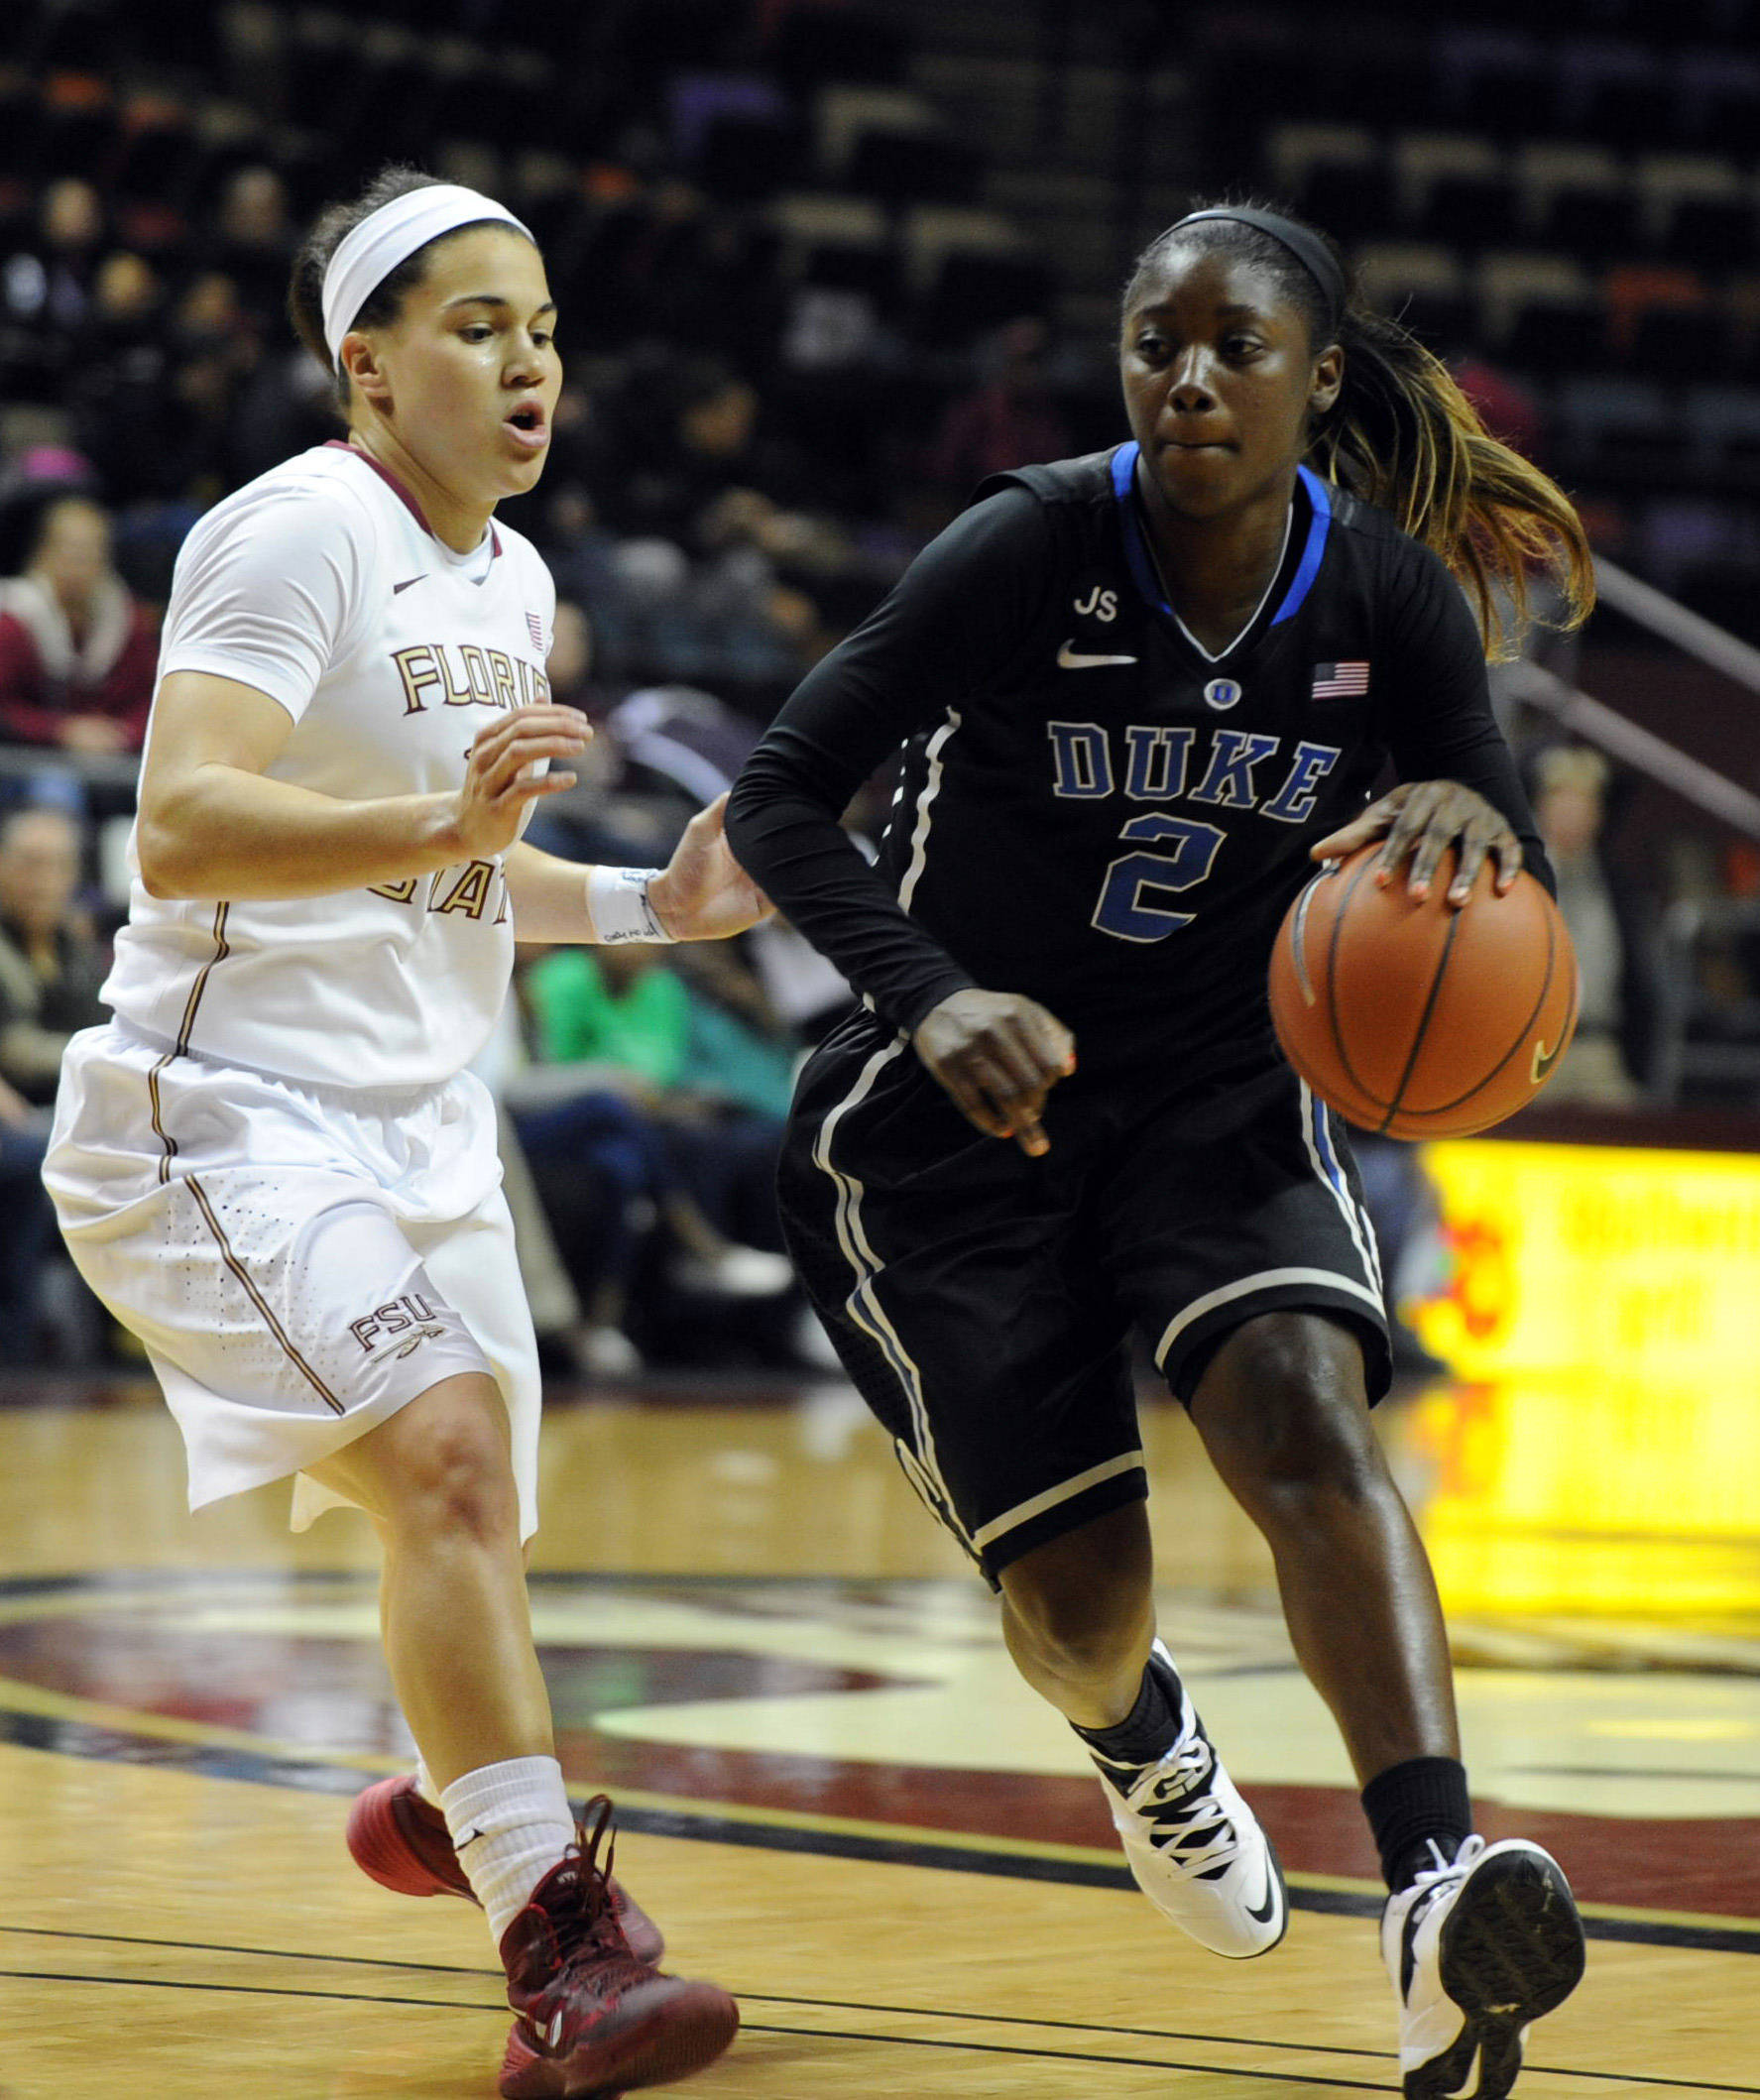 Jan 23, 2014; Tallahassee, FL, USA; Duke Blue Devils guard Alexis Jones (2) moves the ball past Florida State Seminoles guard Brittany Brown (12) during the first half of the game at the Donald L. Tucker Center (Tallahassee). Mandatory Credit: Melina Vastola-USA TODAY Sports